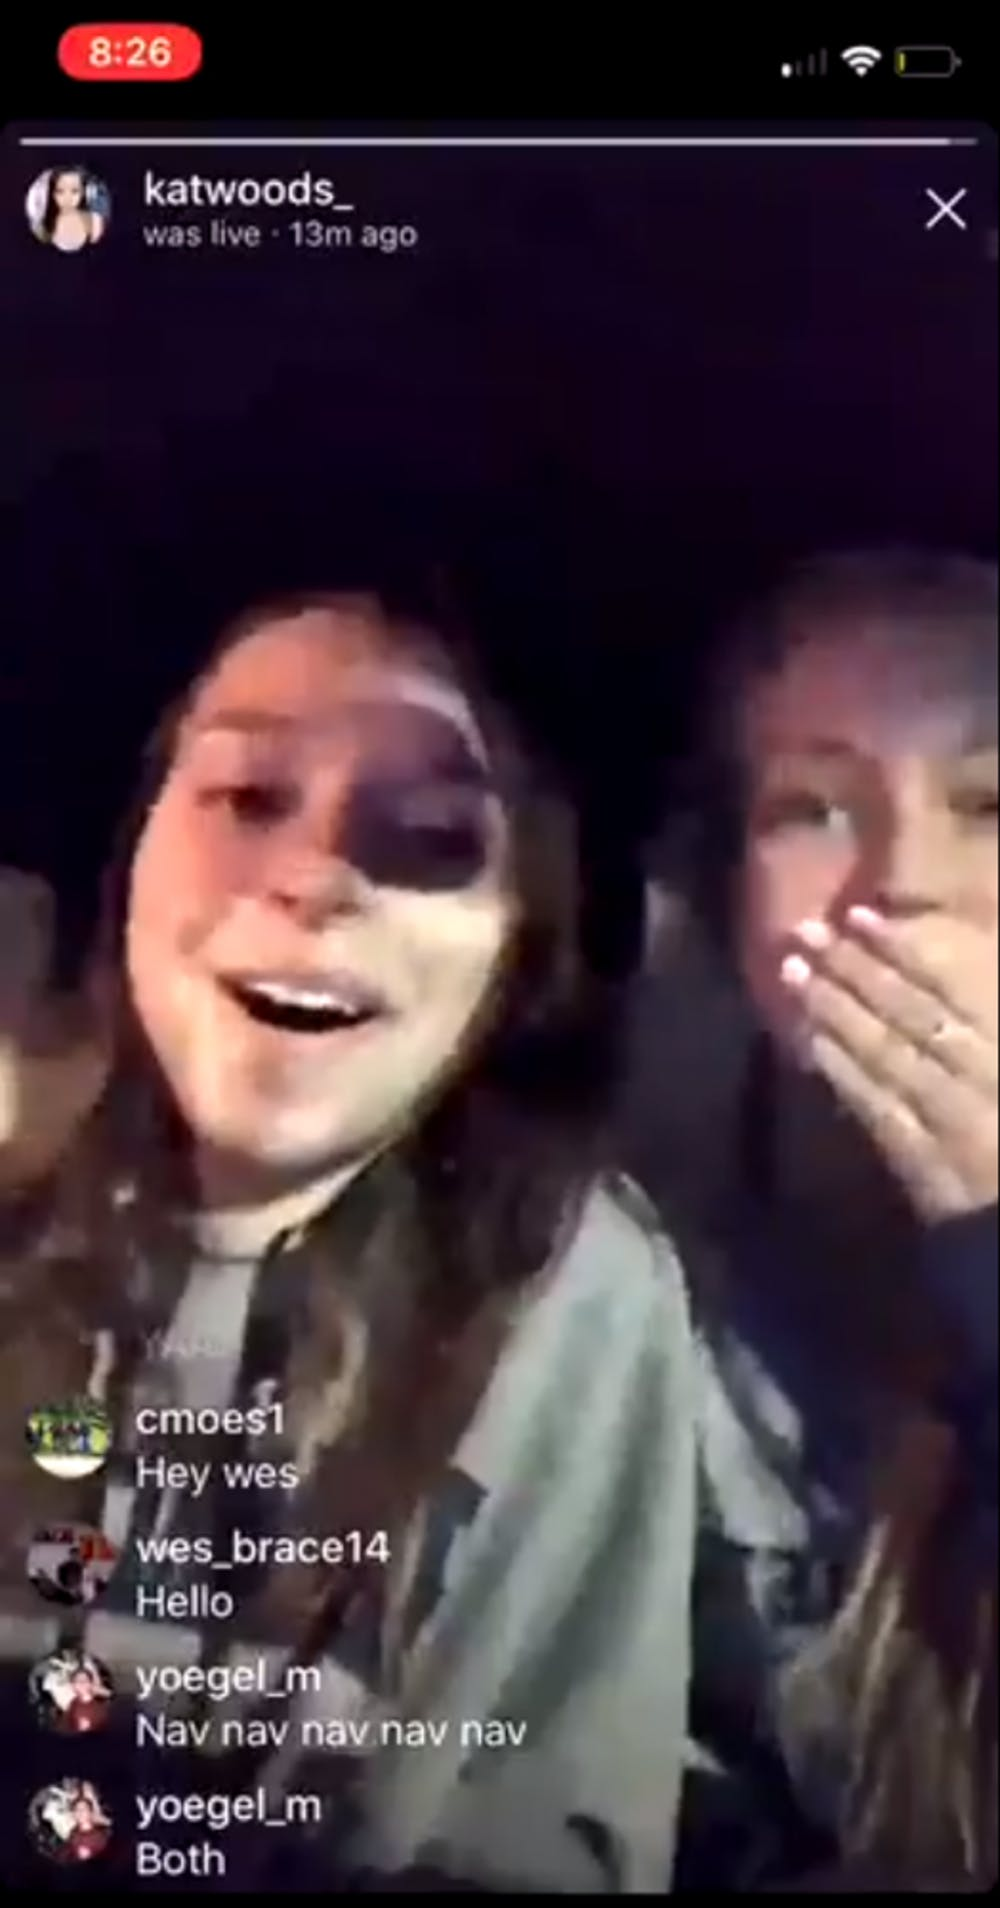 Charlotte de Vries (right) used a racial slur in an Instagram Live video.